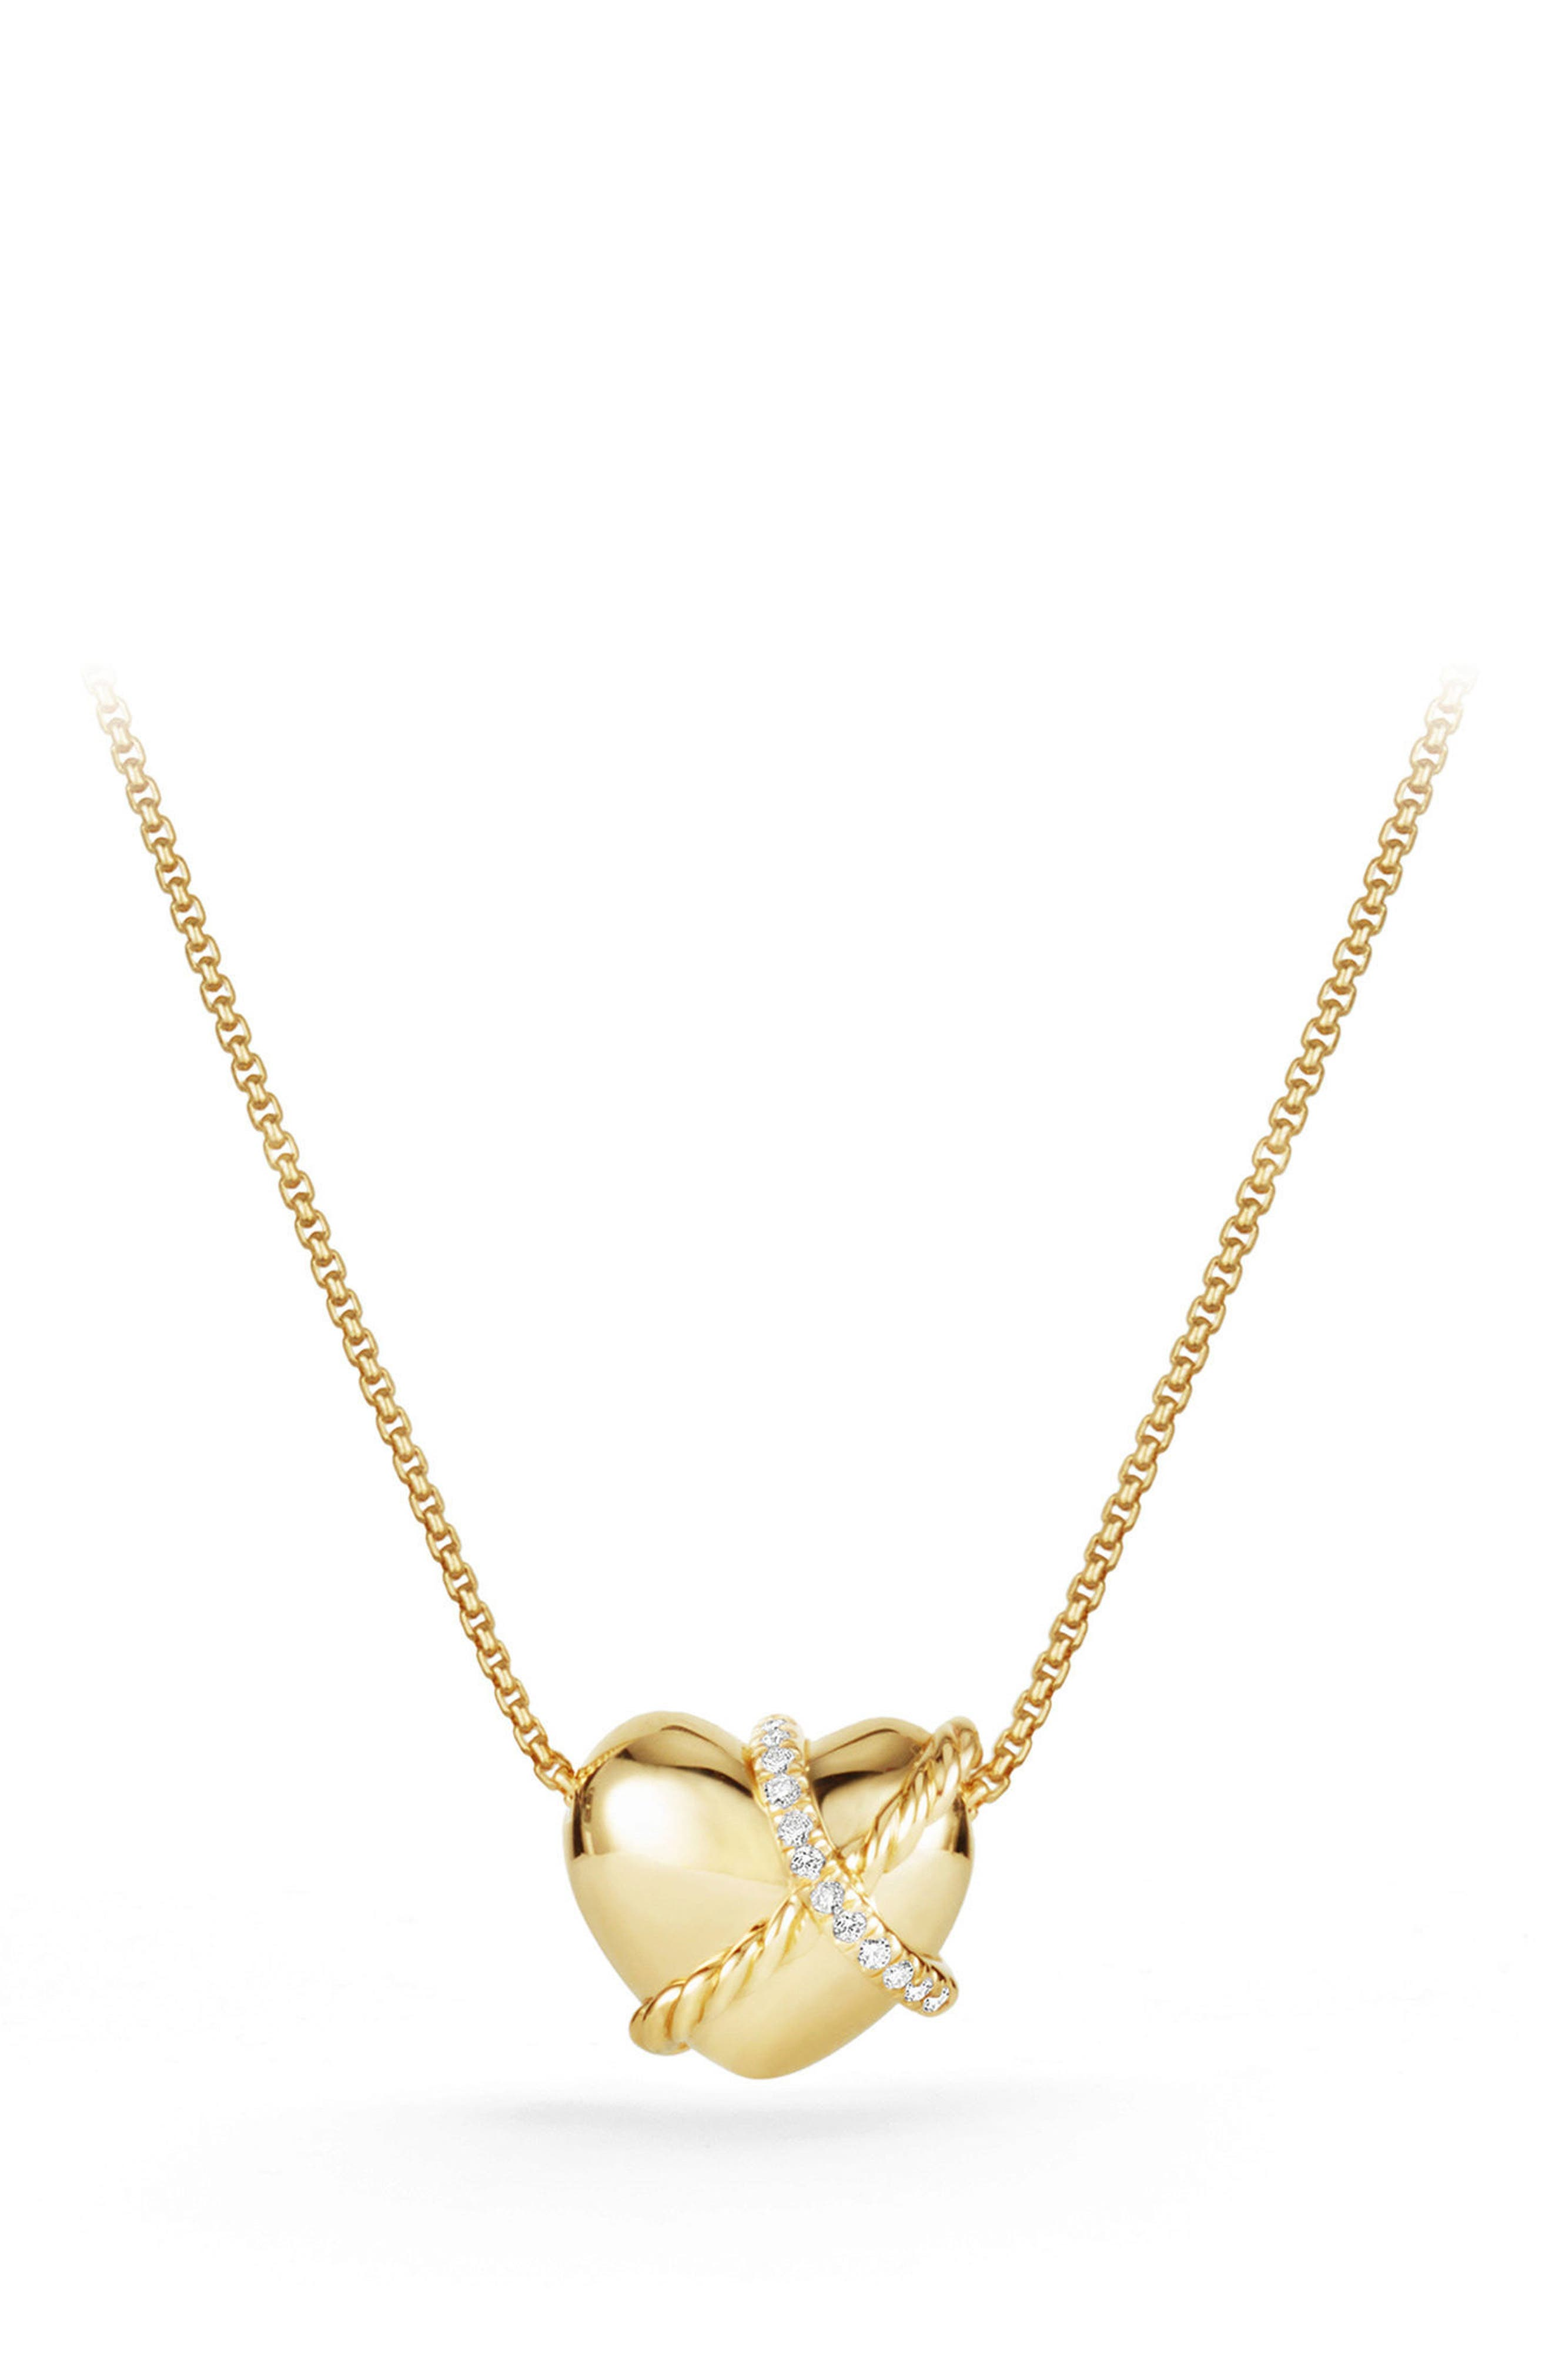 Heart Pendant Necklace in 18K Gold with Diamonds,                             Main thumbnail 1, color,                             Yellow Gold/ Diamond